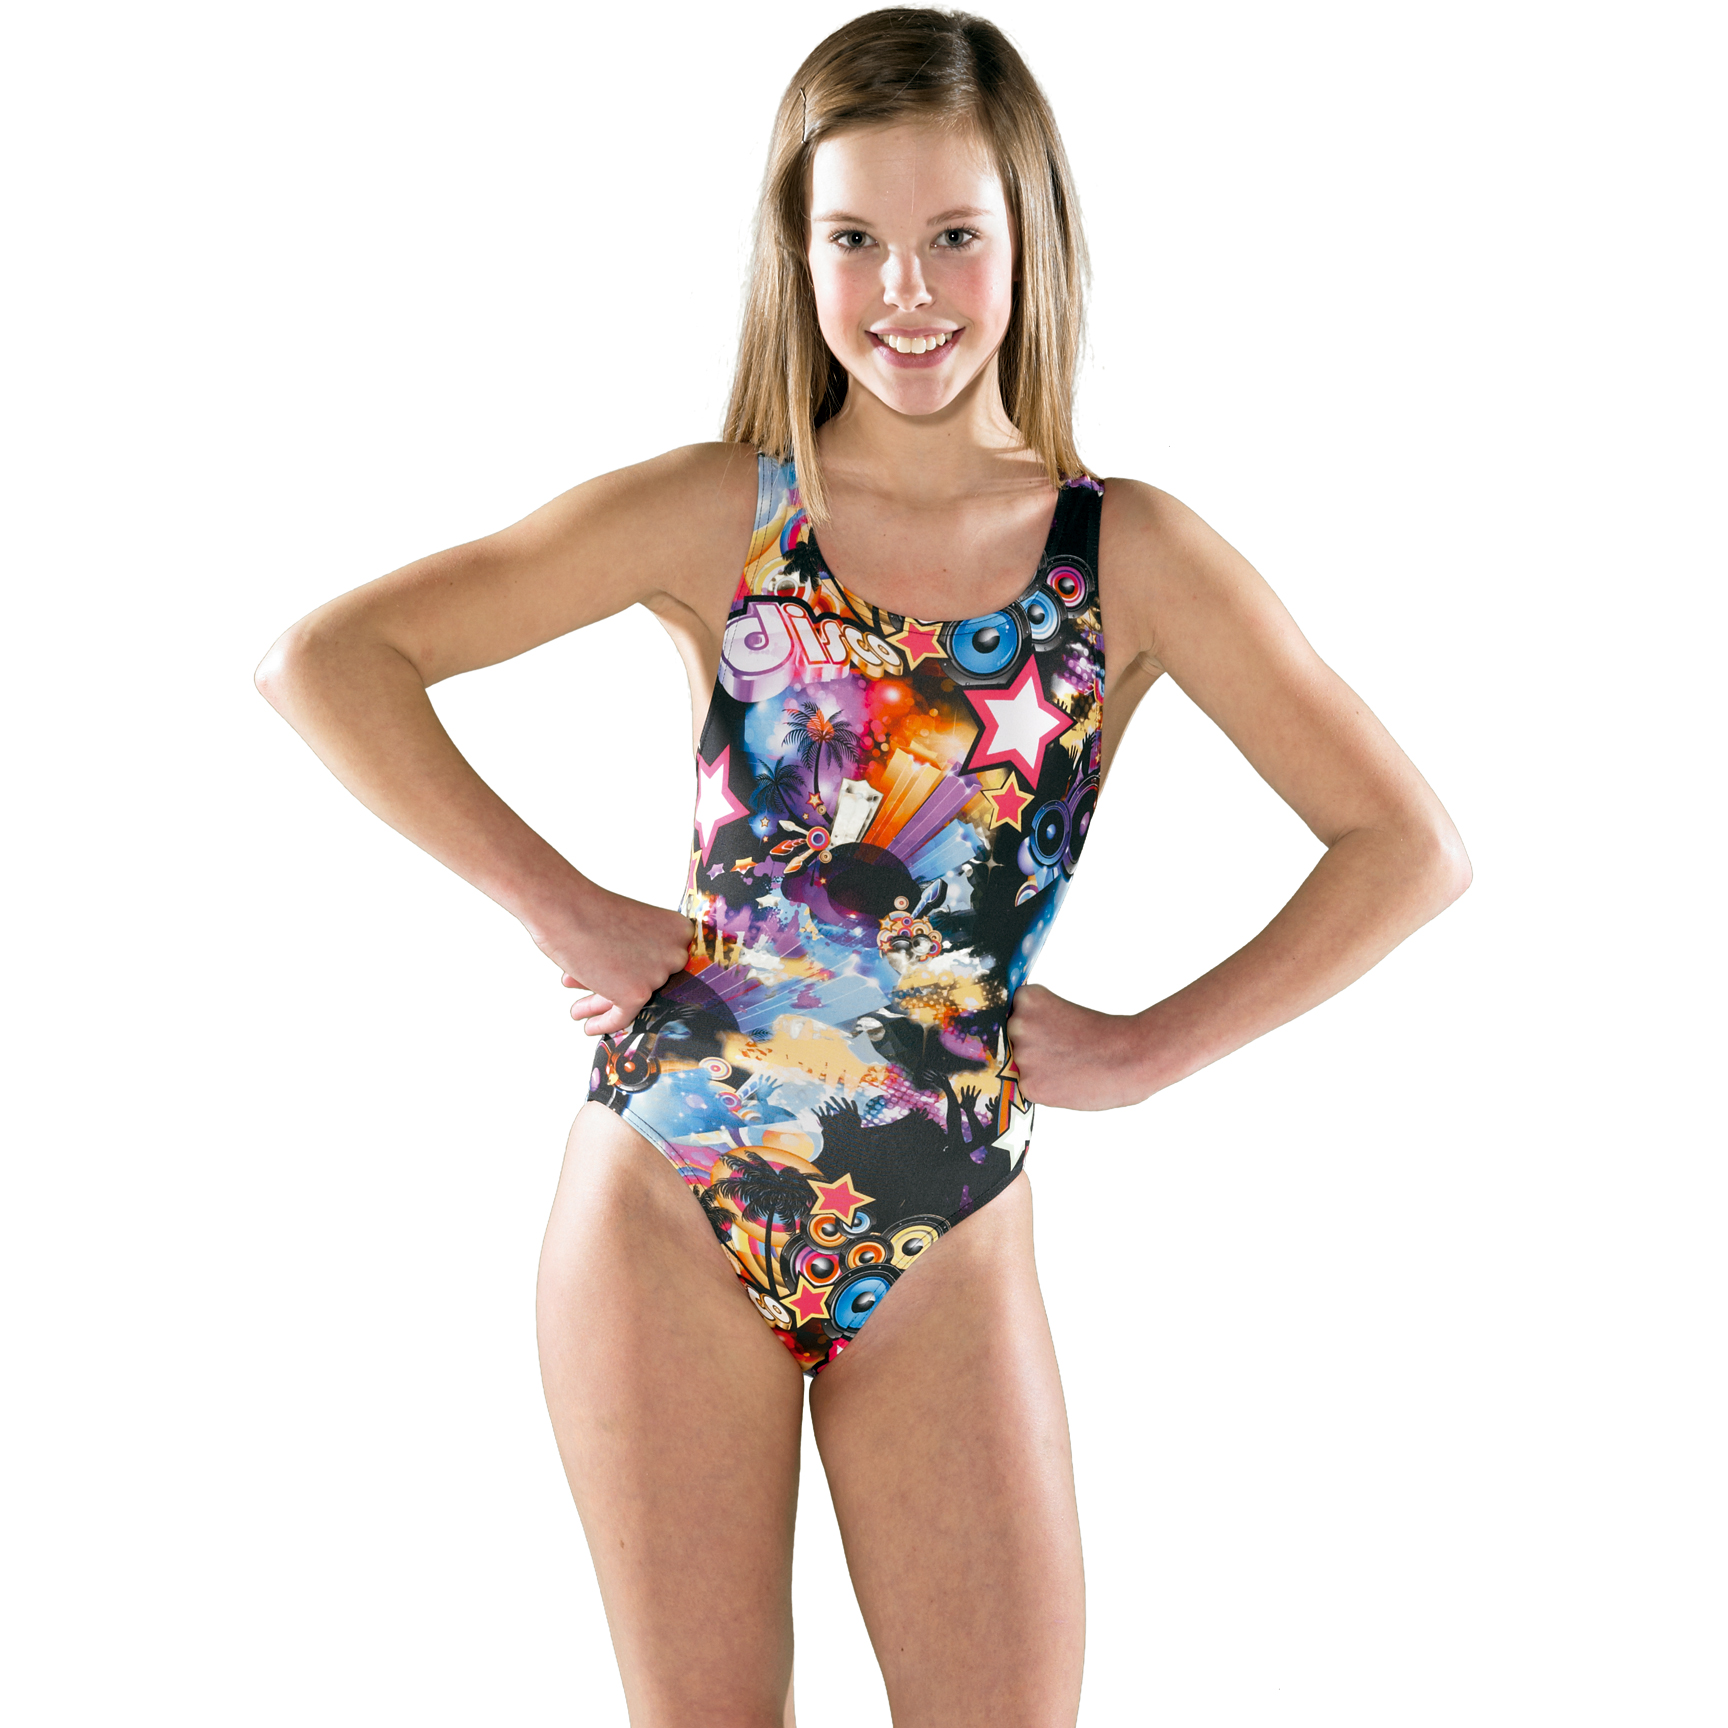 Maru Girls Disco B Pacer Auto Back Swimsuit AW13.